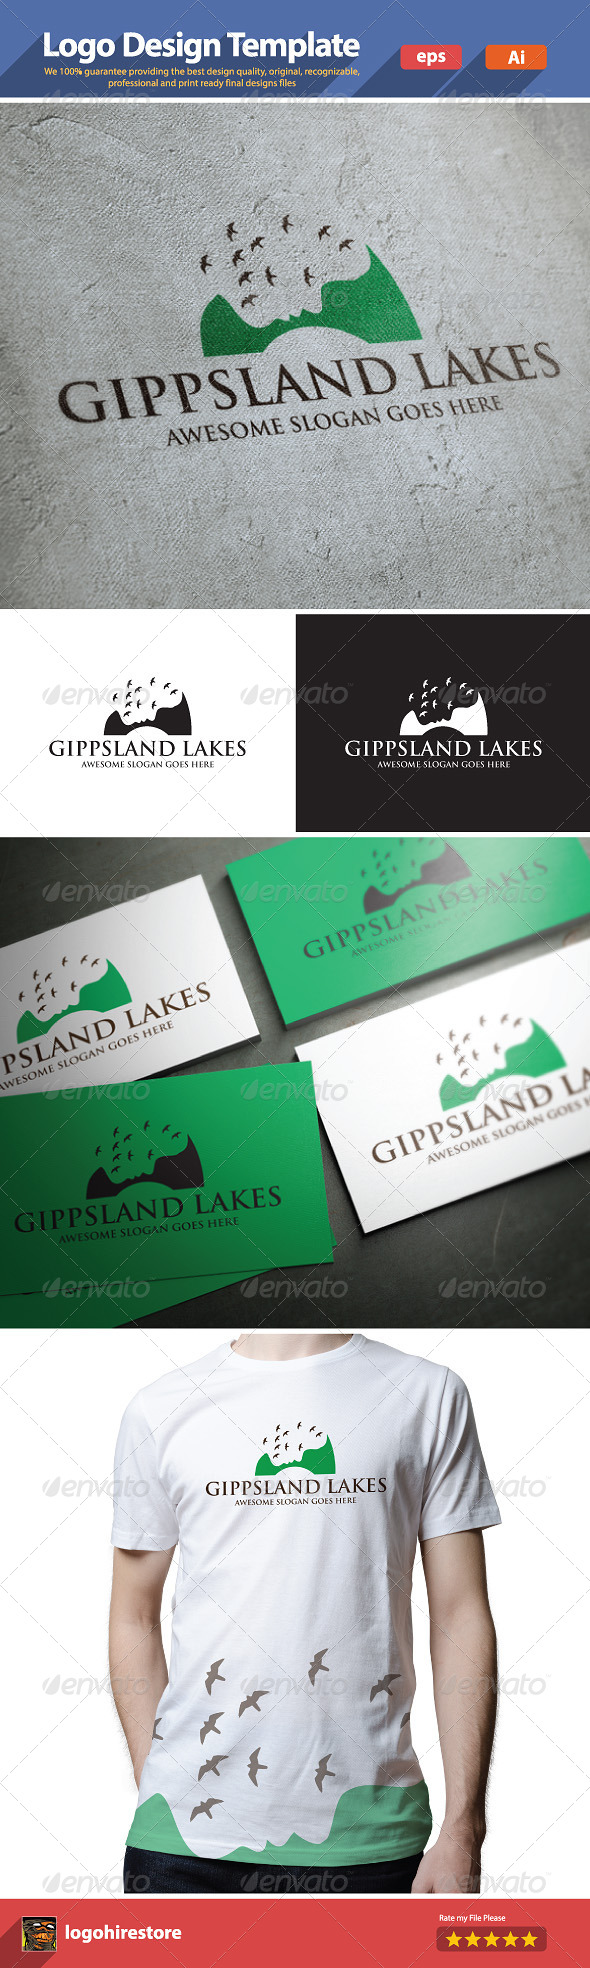 GraphicRiver Gippsland Lakes 6210816